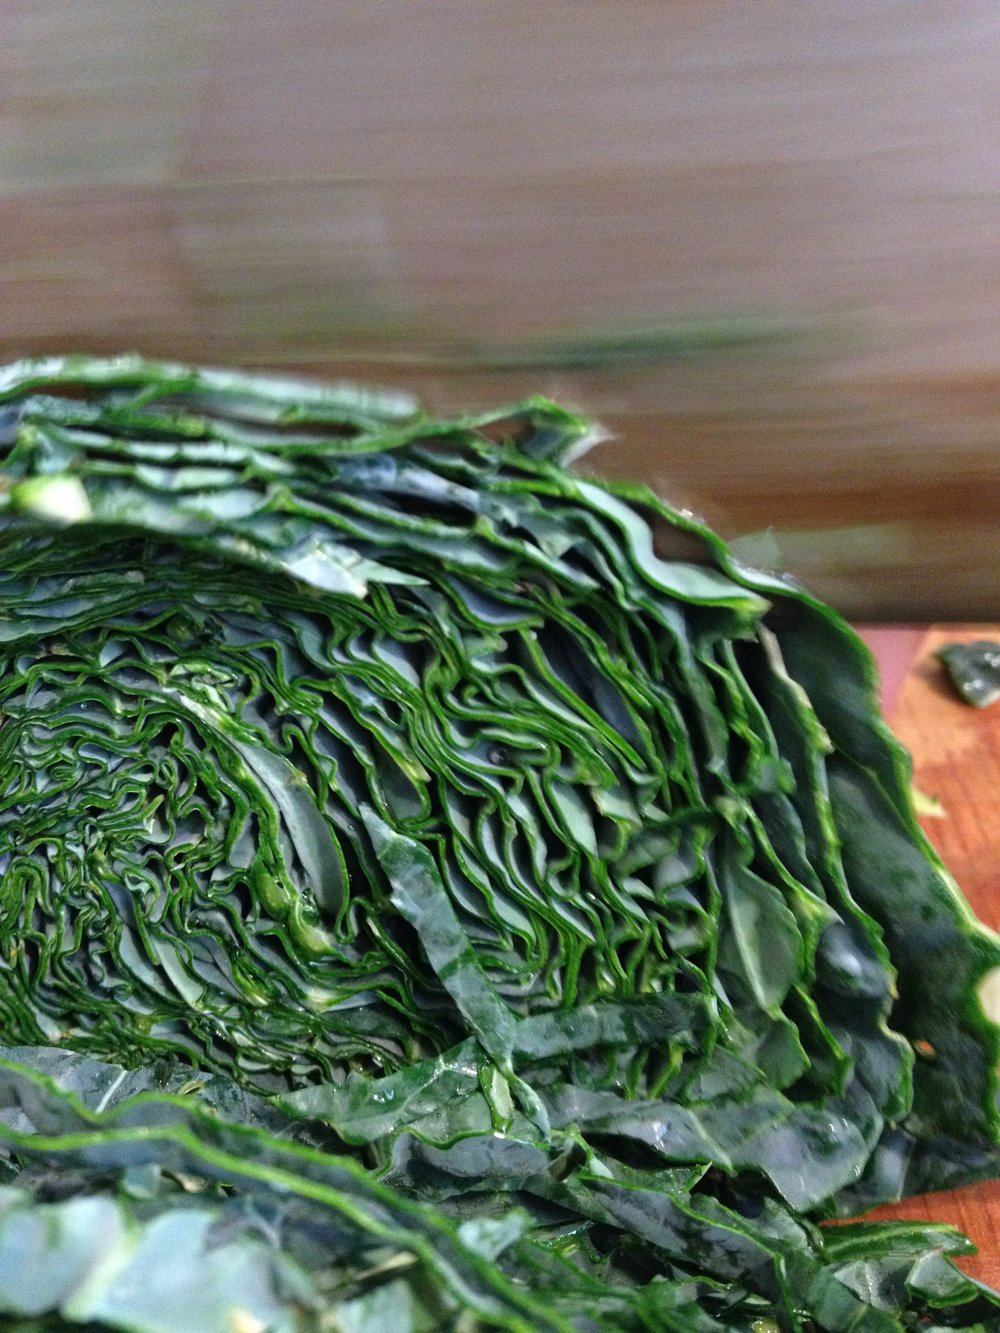 Thinly sliced lacinato kale holds more dressing, which is what we want with a caesar.